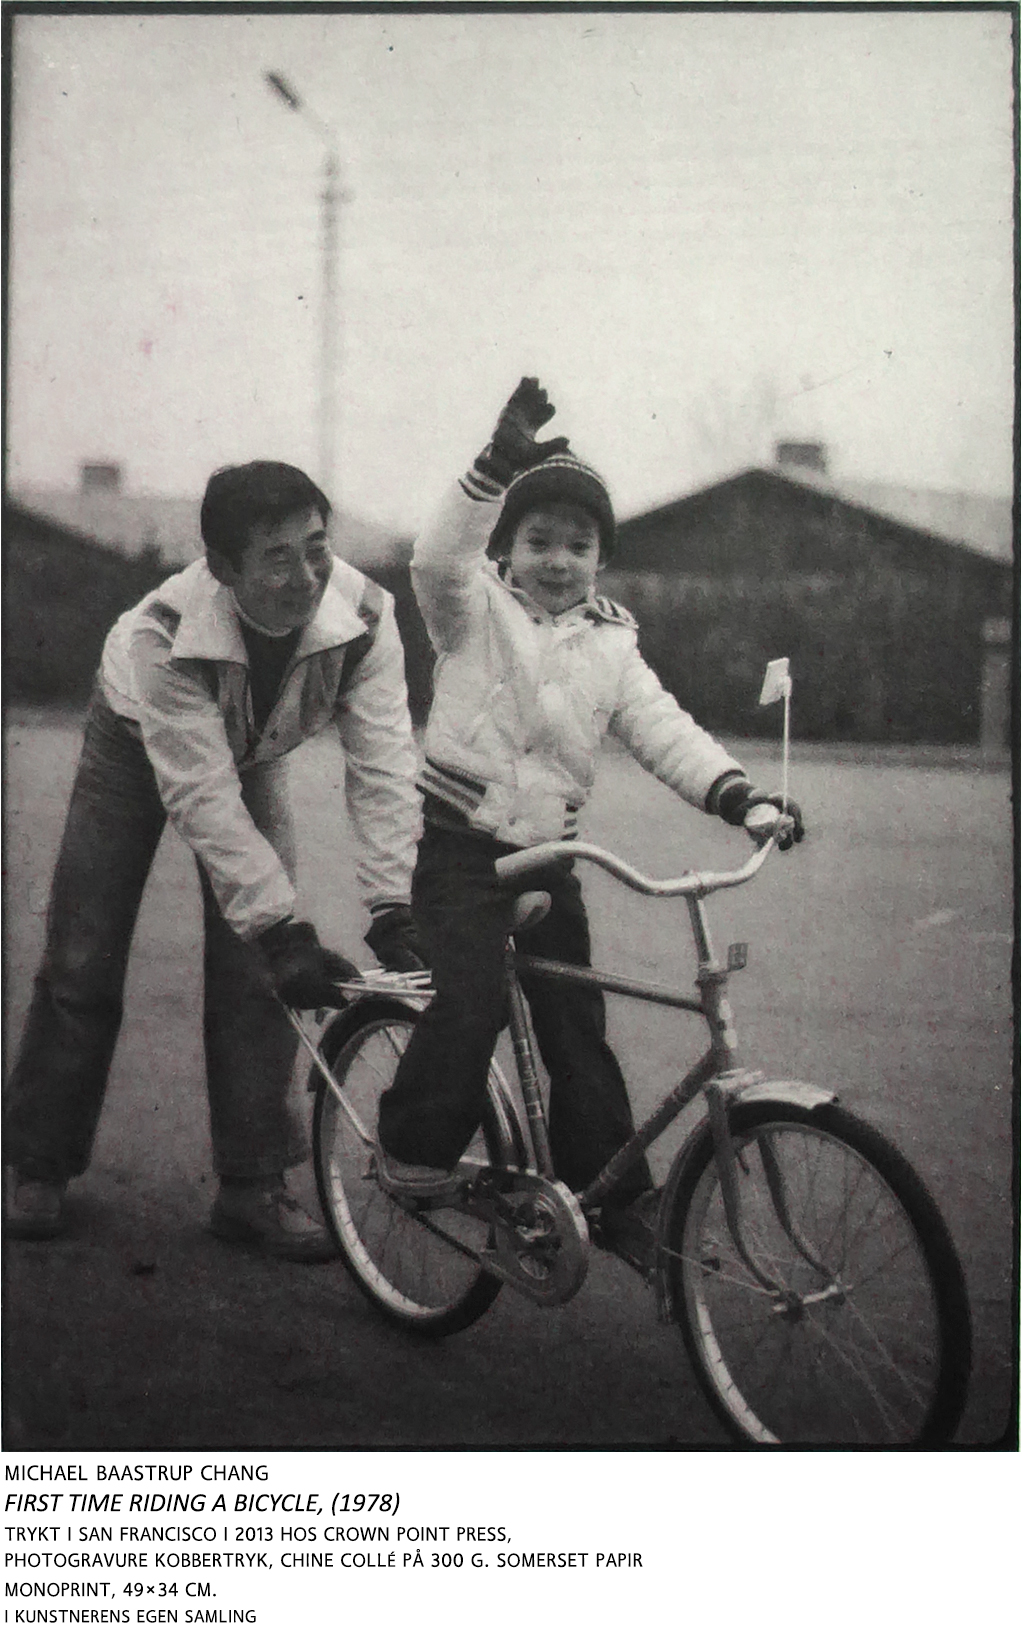 photo of michael baastrup chang and his father